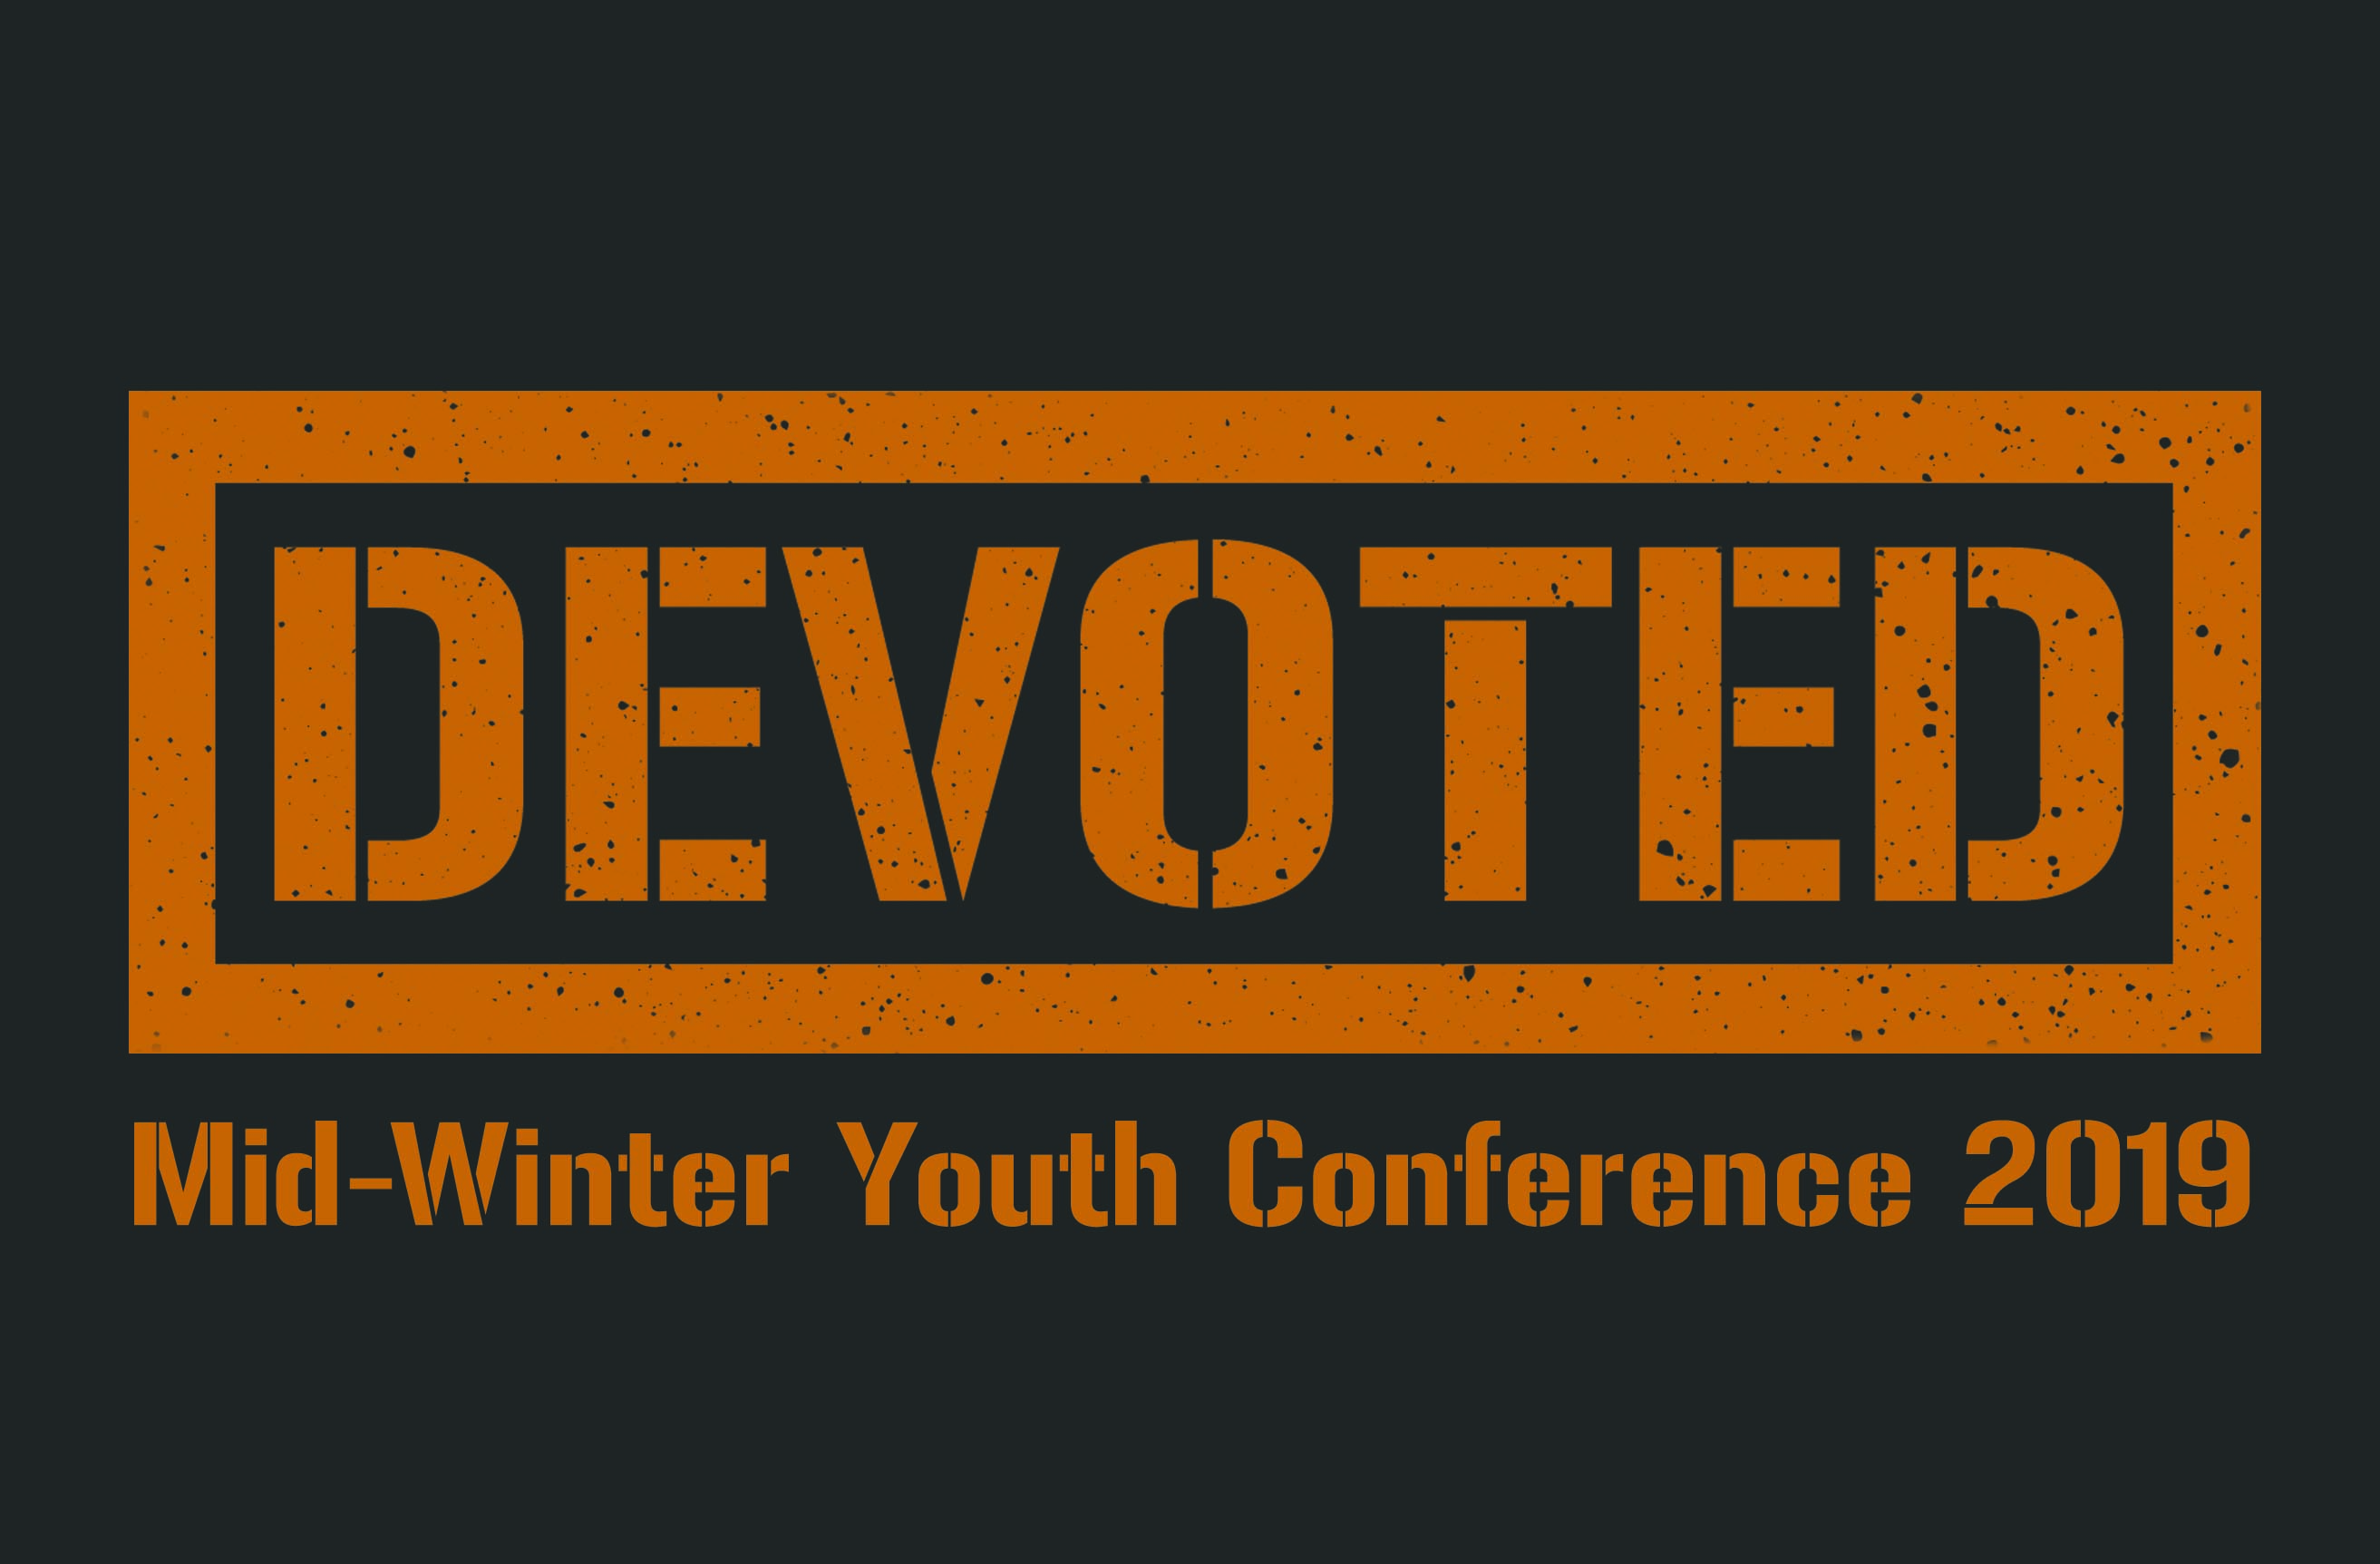 Mid-Winter Youth Conference 2019 Exhibitor Registration logo